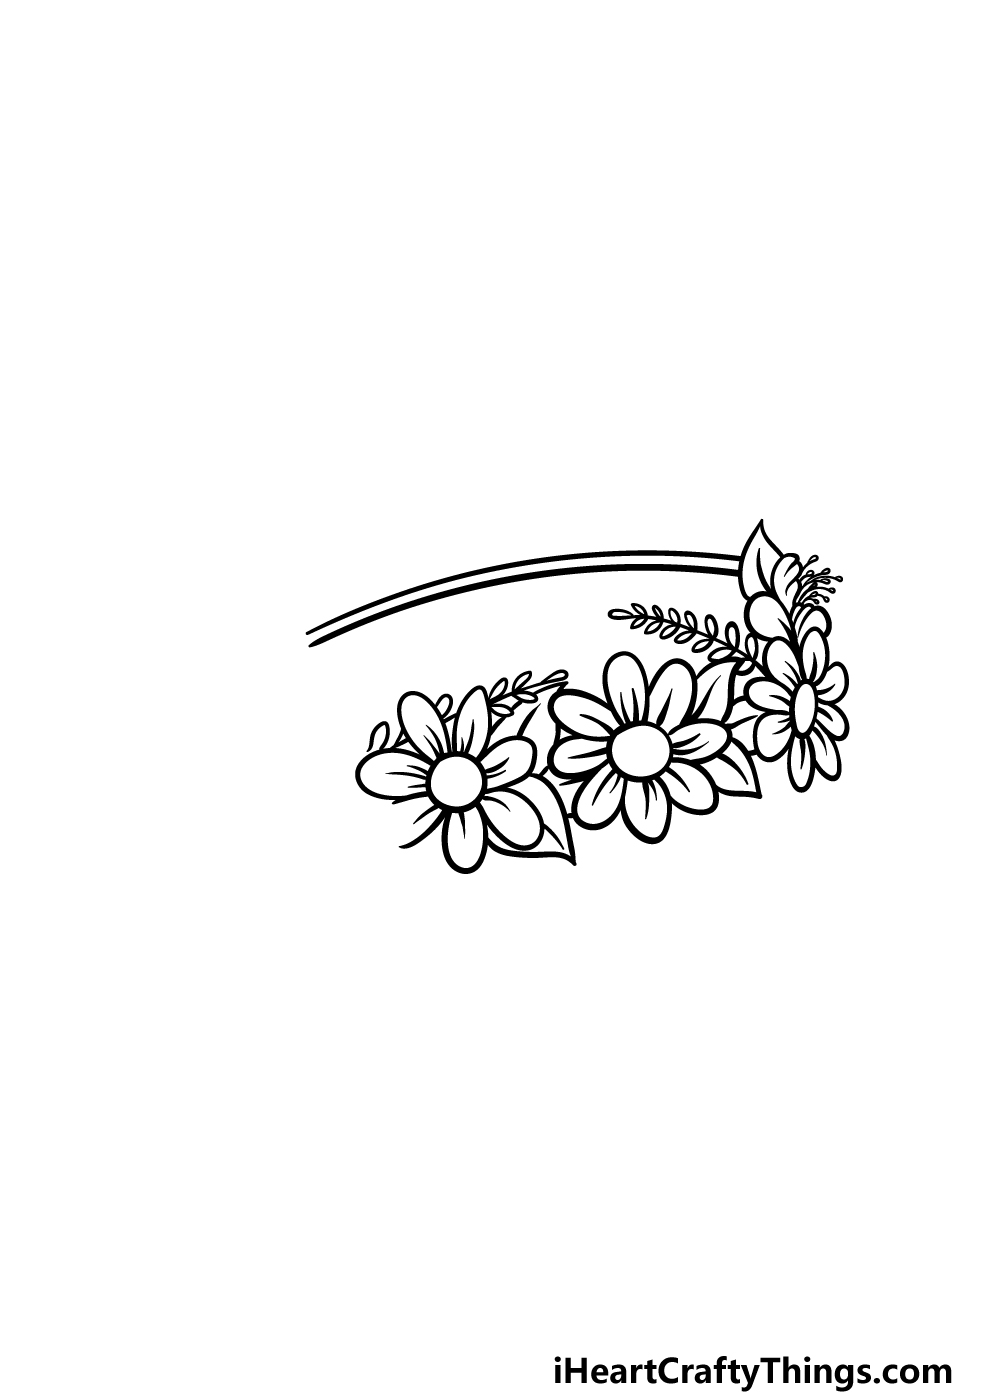 drawing a flower crown step 3